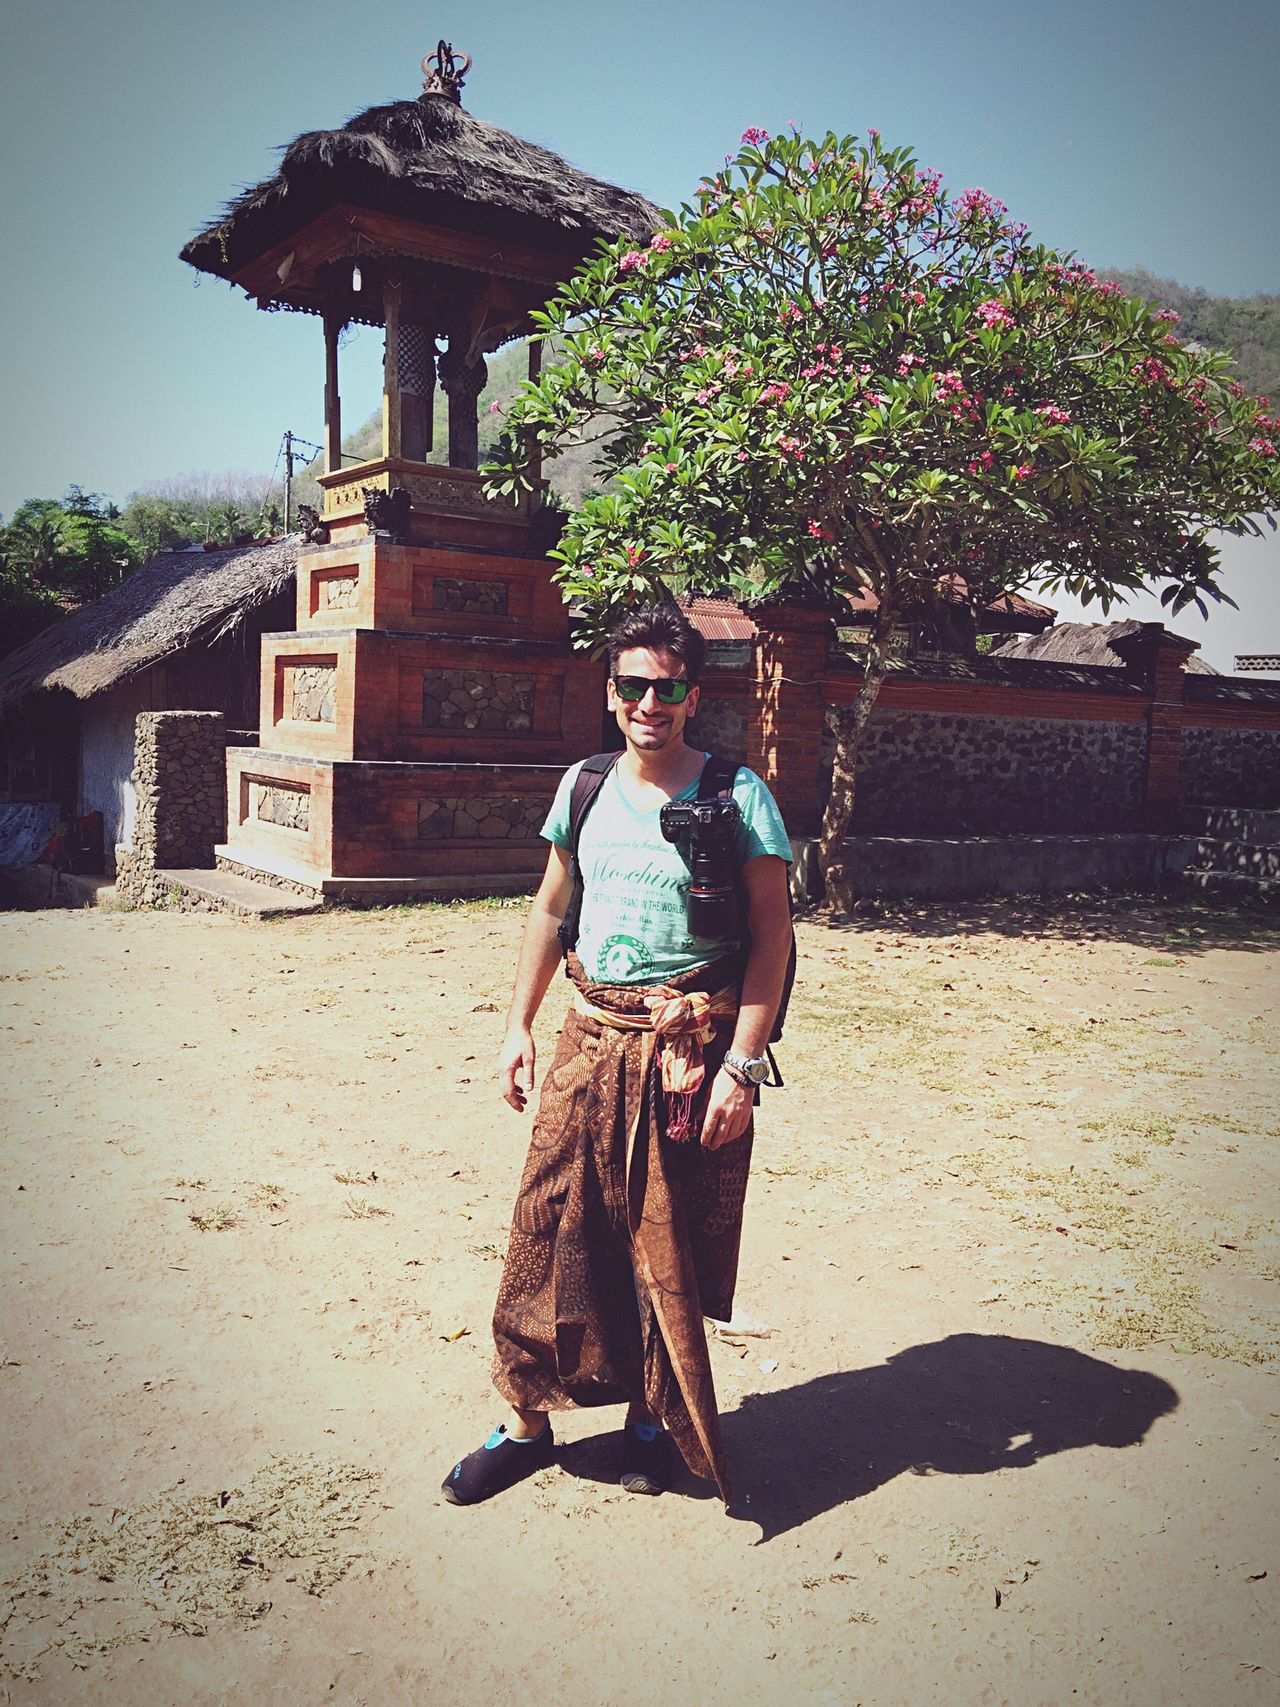 Ops, it is me - Bali style, before photographing ceremony with the Bali Aga people...a secluded village and society That's Me Cheese! Enjoying Life IPhone IPhoneography Traditions Iphone6plus Snapshot Balinese Life Relaxing Taking Photos Explore Travel INDONESIA Exotic Baliphotography Bali, Indonesia Candidasa Bali Bali Iphone6 Feel The Journey